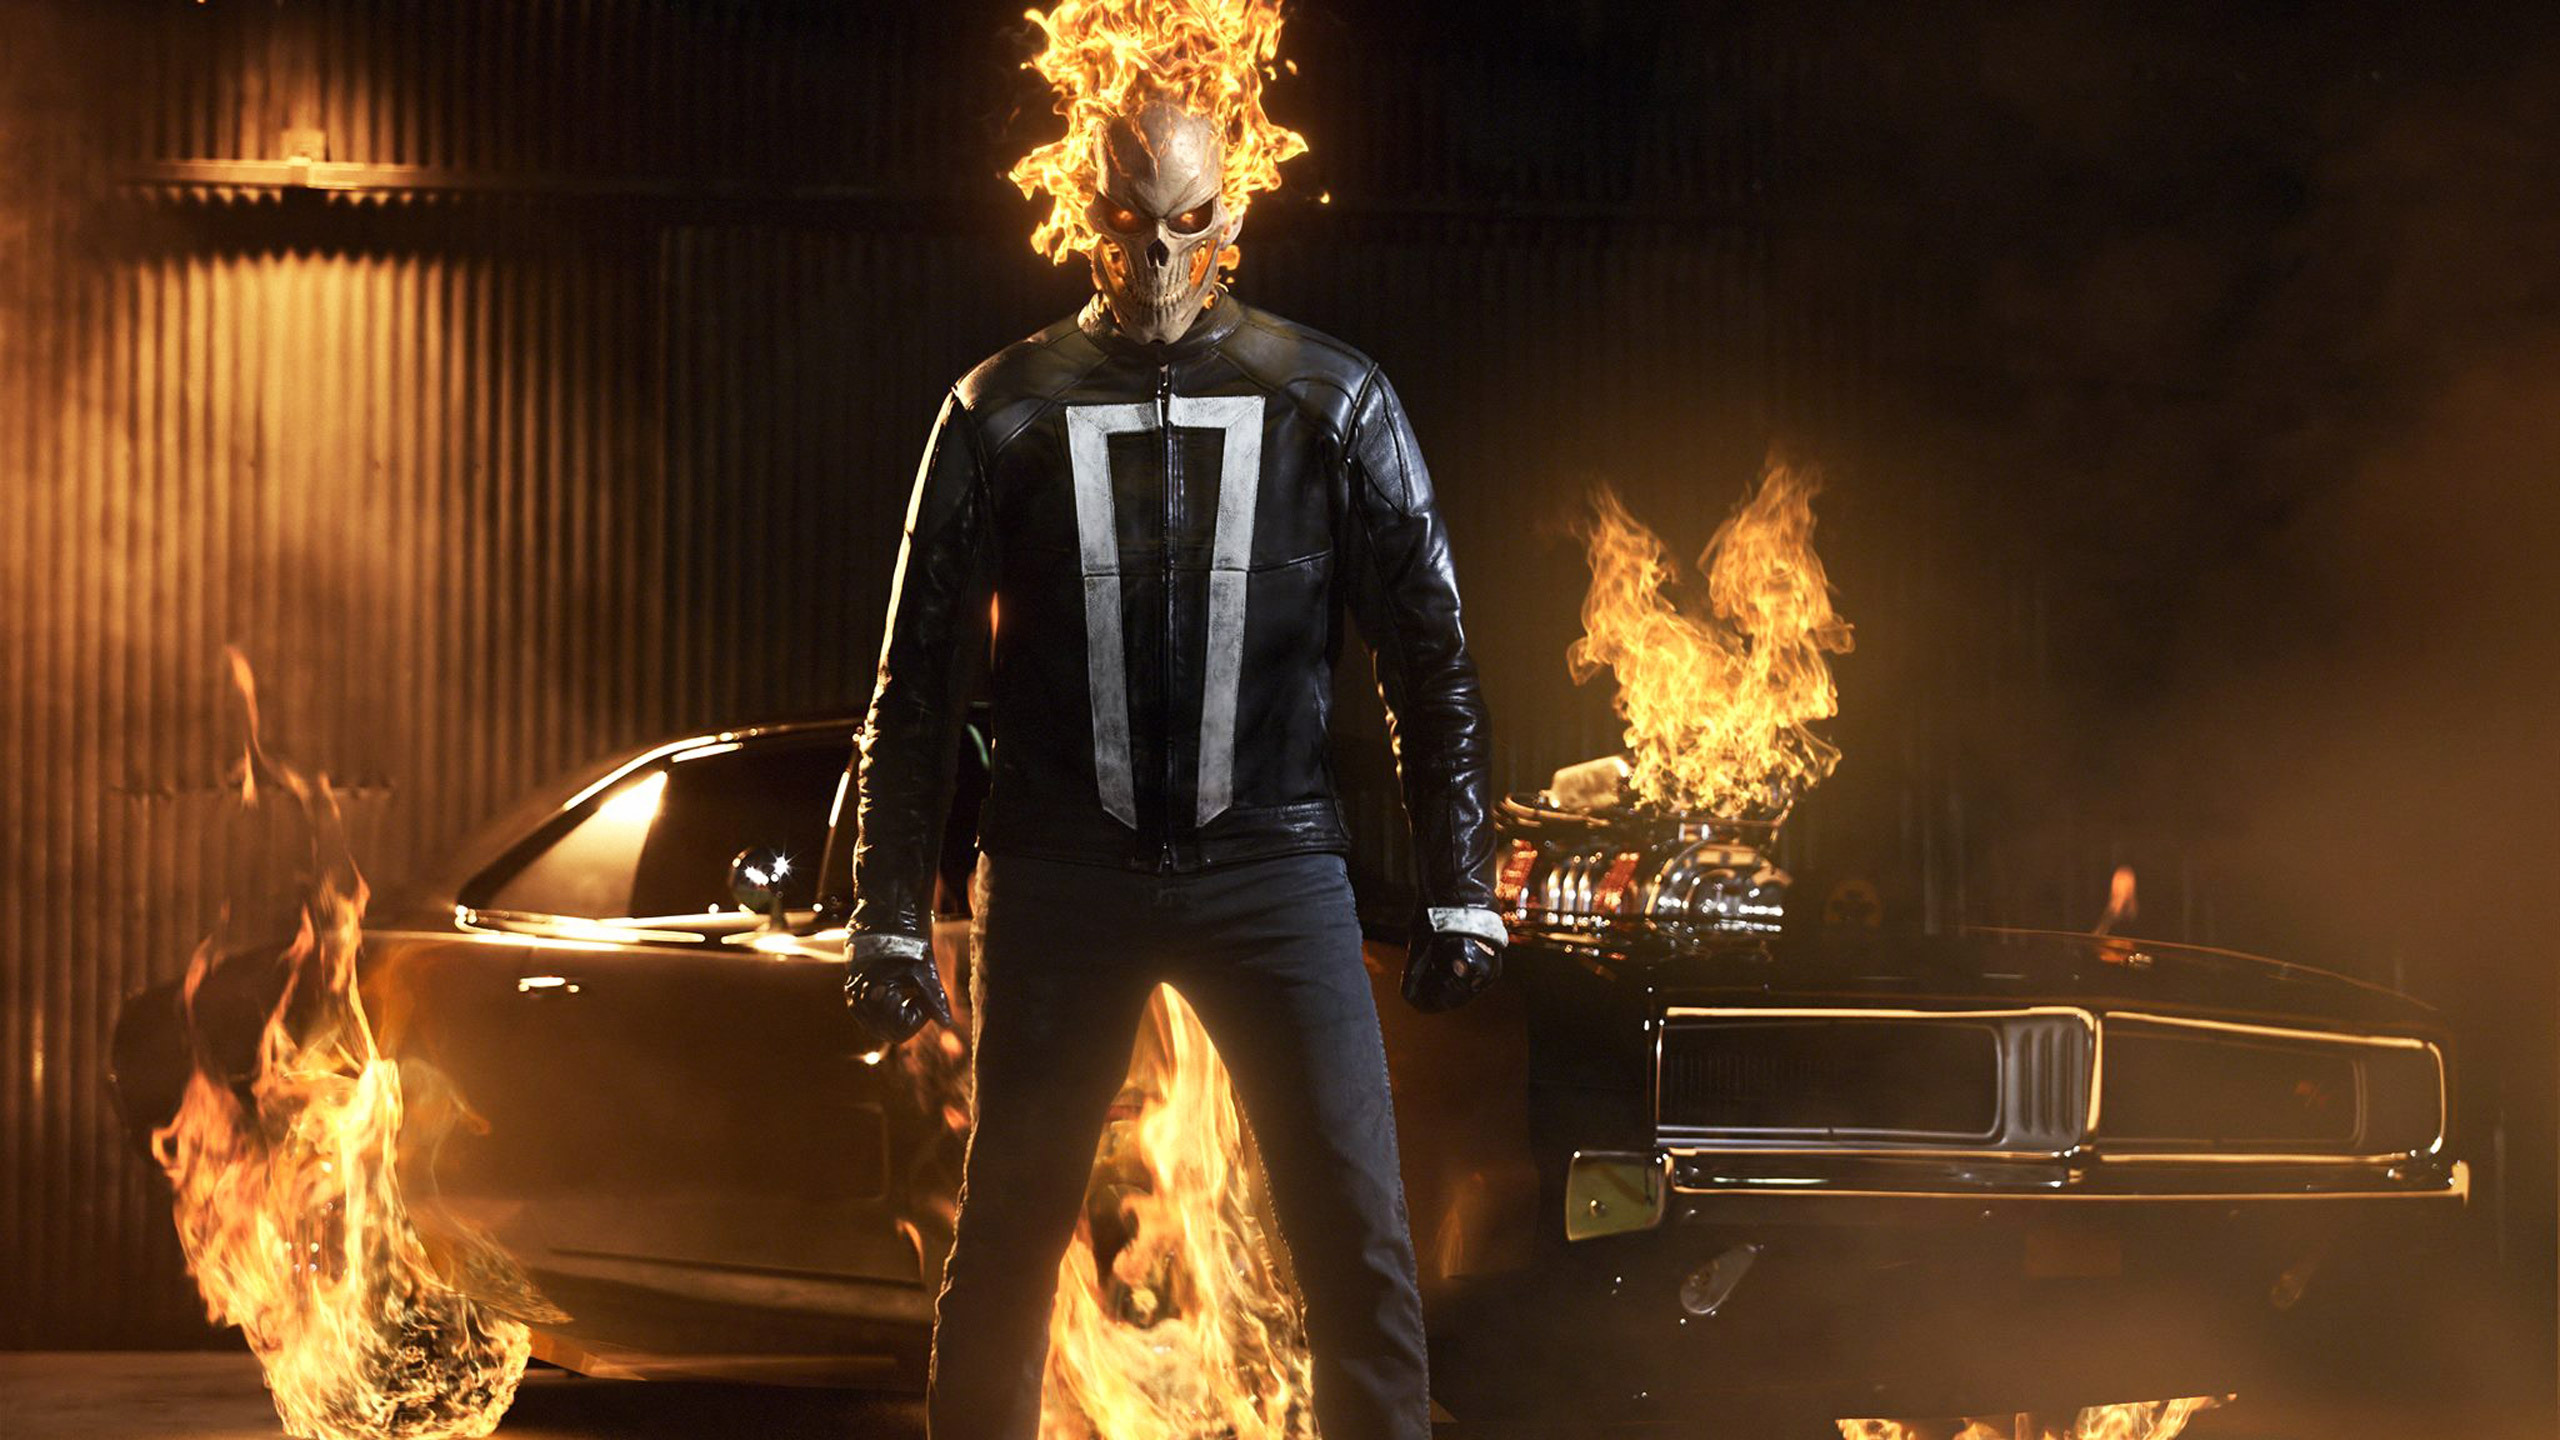 Top Wallpaper Mobile Ghost Rider - agents-of-shield-ghost-rider-do-2560x1440  Snapshot_807359.jpg